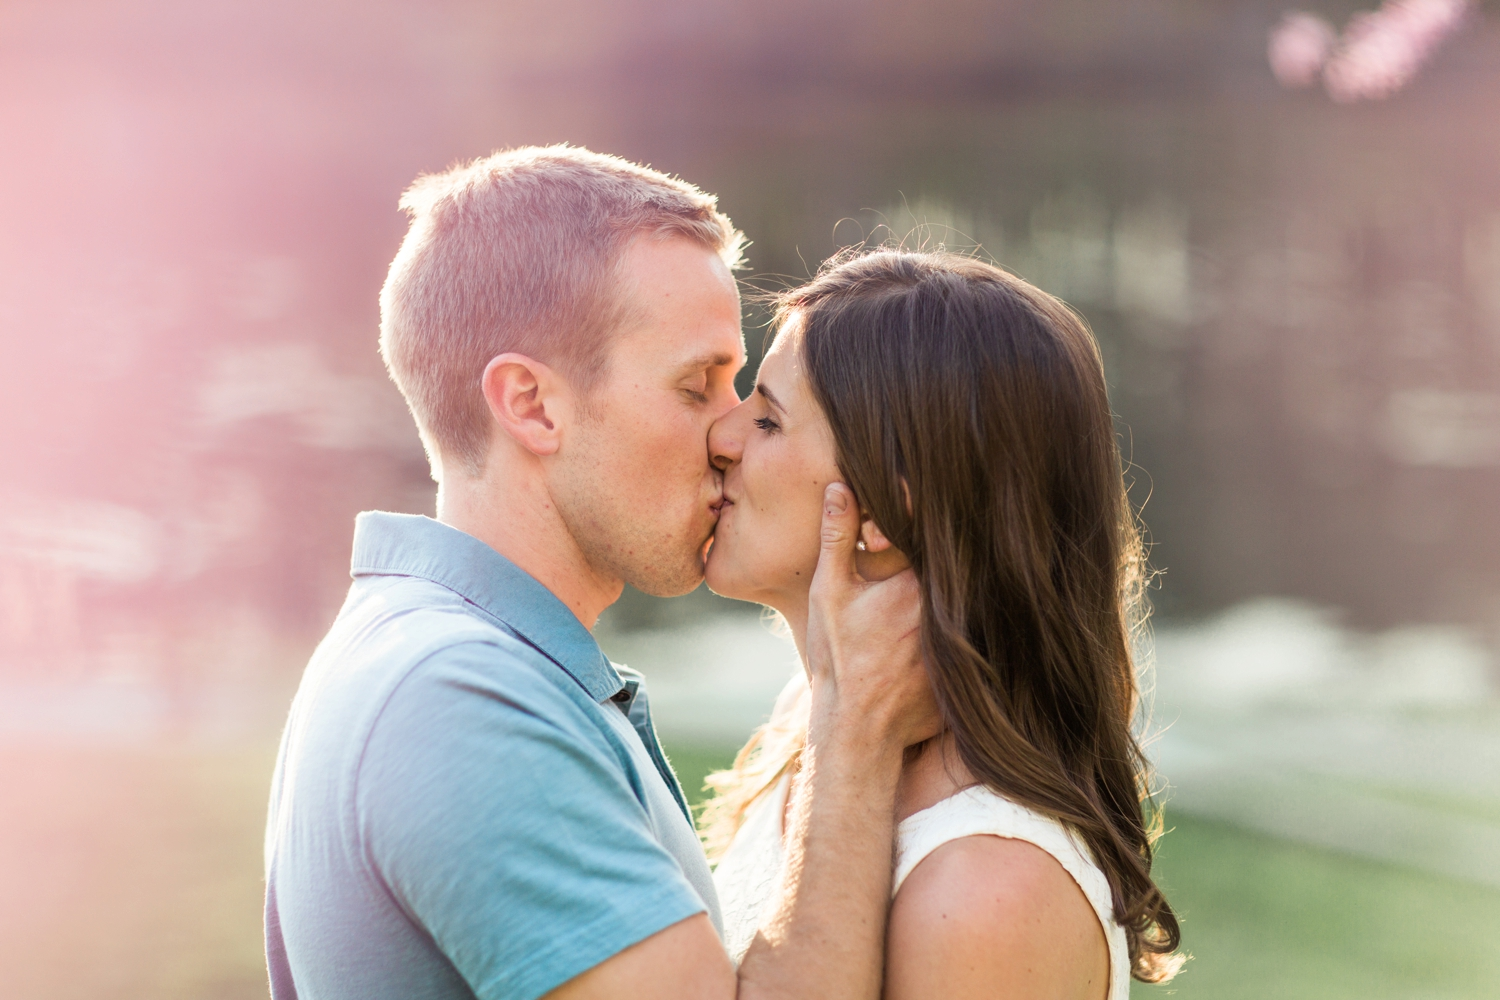 indianapolis_indiana_wedding_photographer_eagle_creek_engagement_chloe_luka_photography_6367.jpg